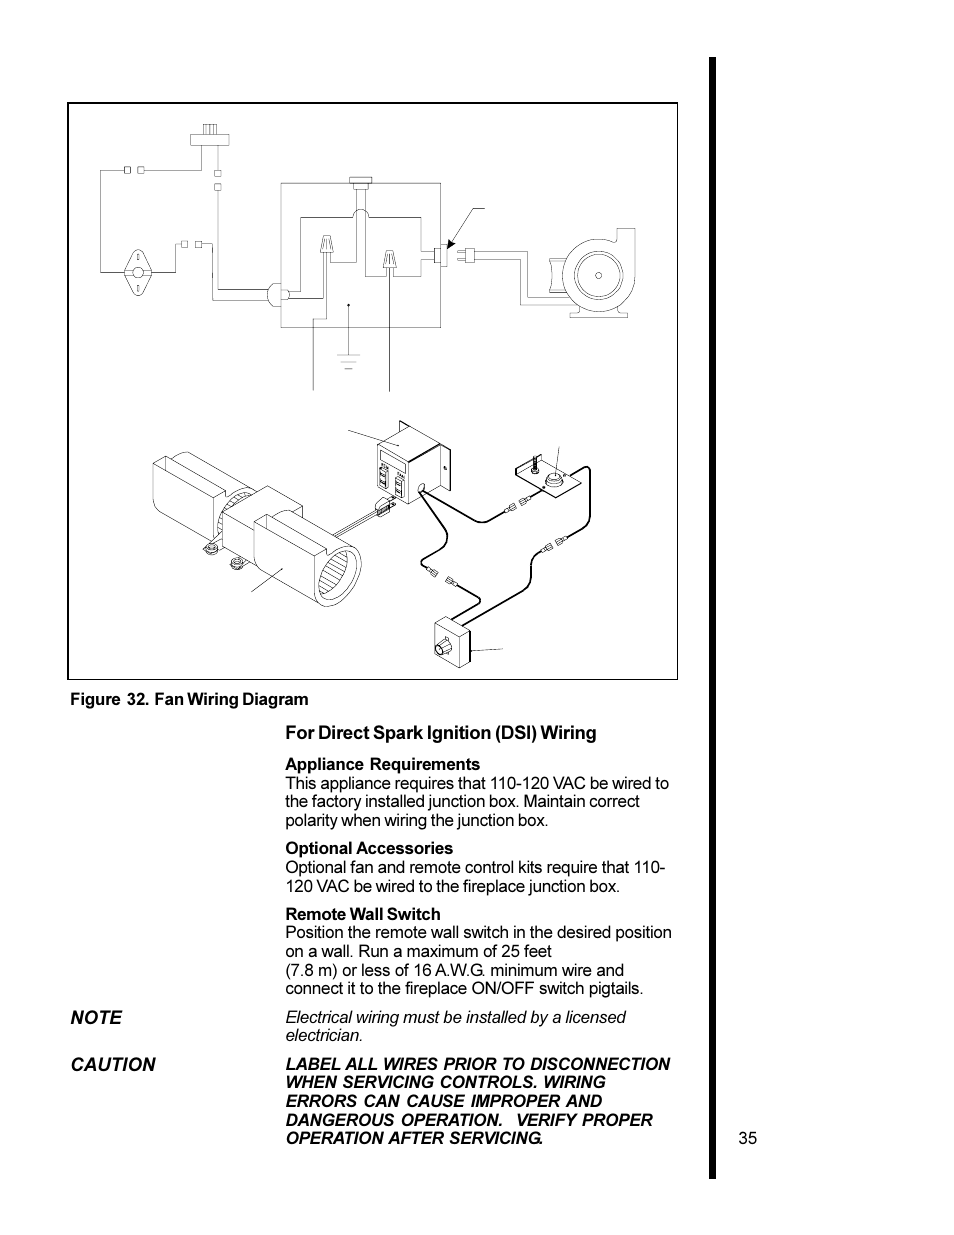 hight resolution of for direct spark ignition dsi wiring caution 35 figure 32 fan wiring diagram heat glo fireplace heat n glo 6000xlt cdn user manual page 35 43